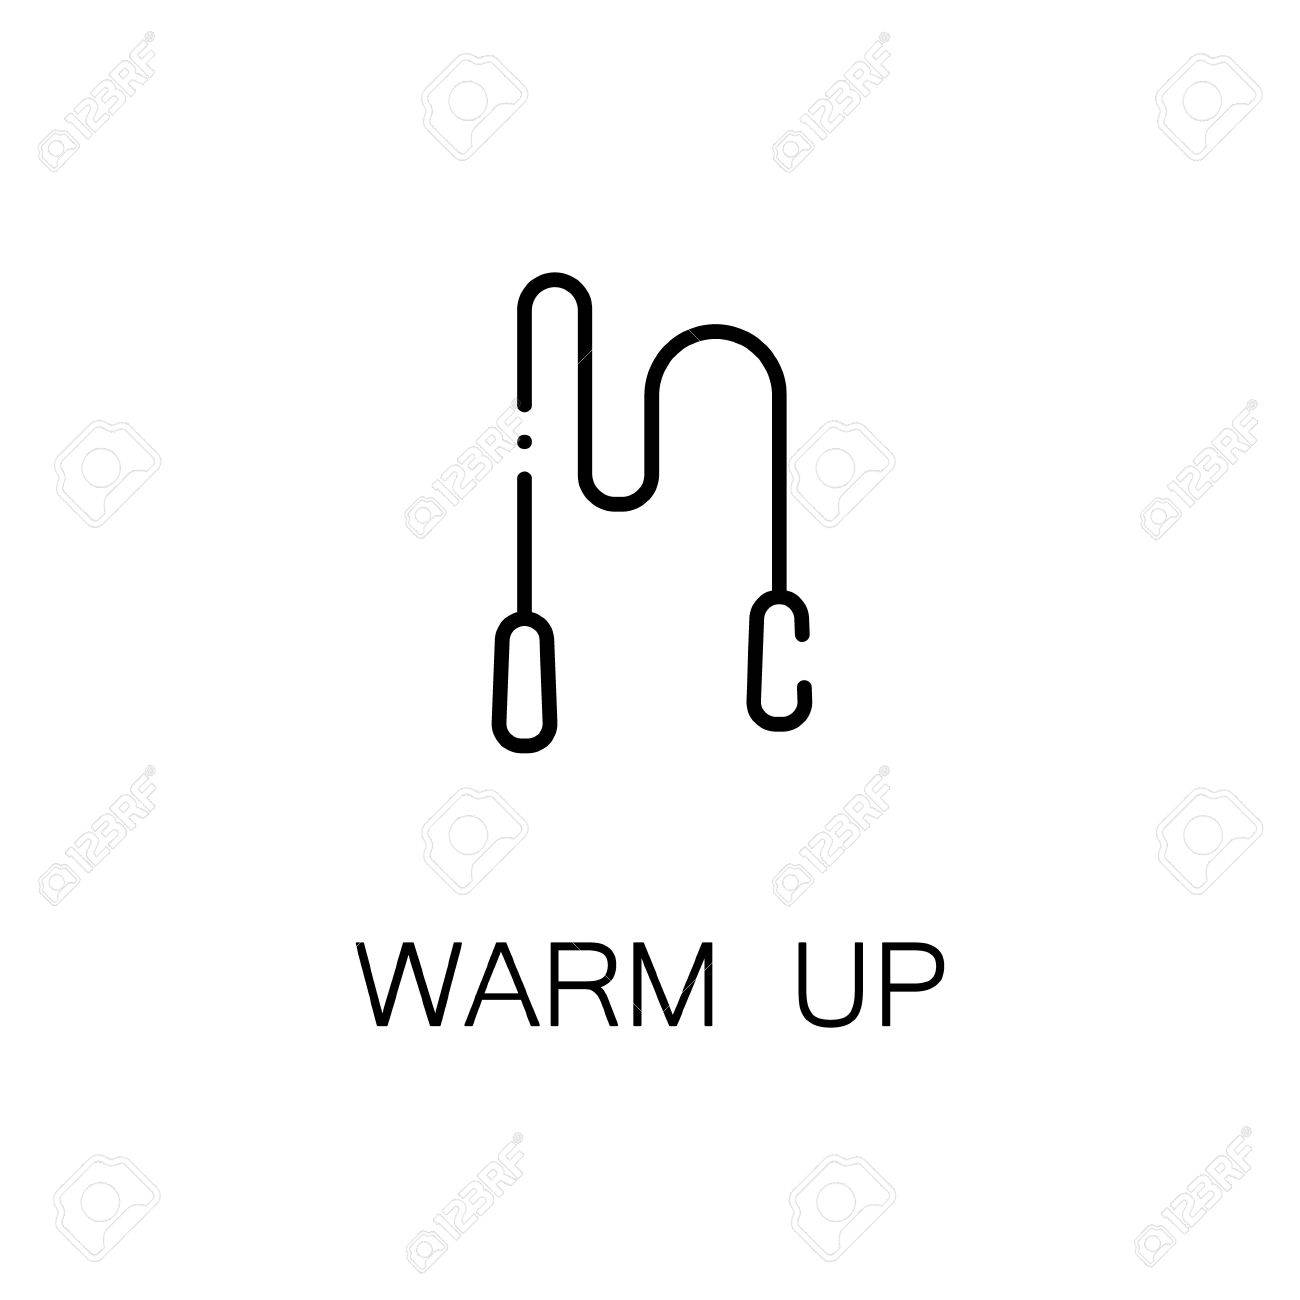 Warm Up Flat Icon Single High Quality Outline Symbol Of Fitness